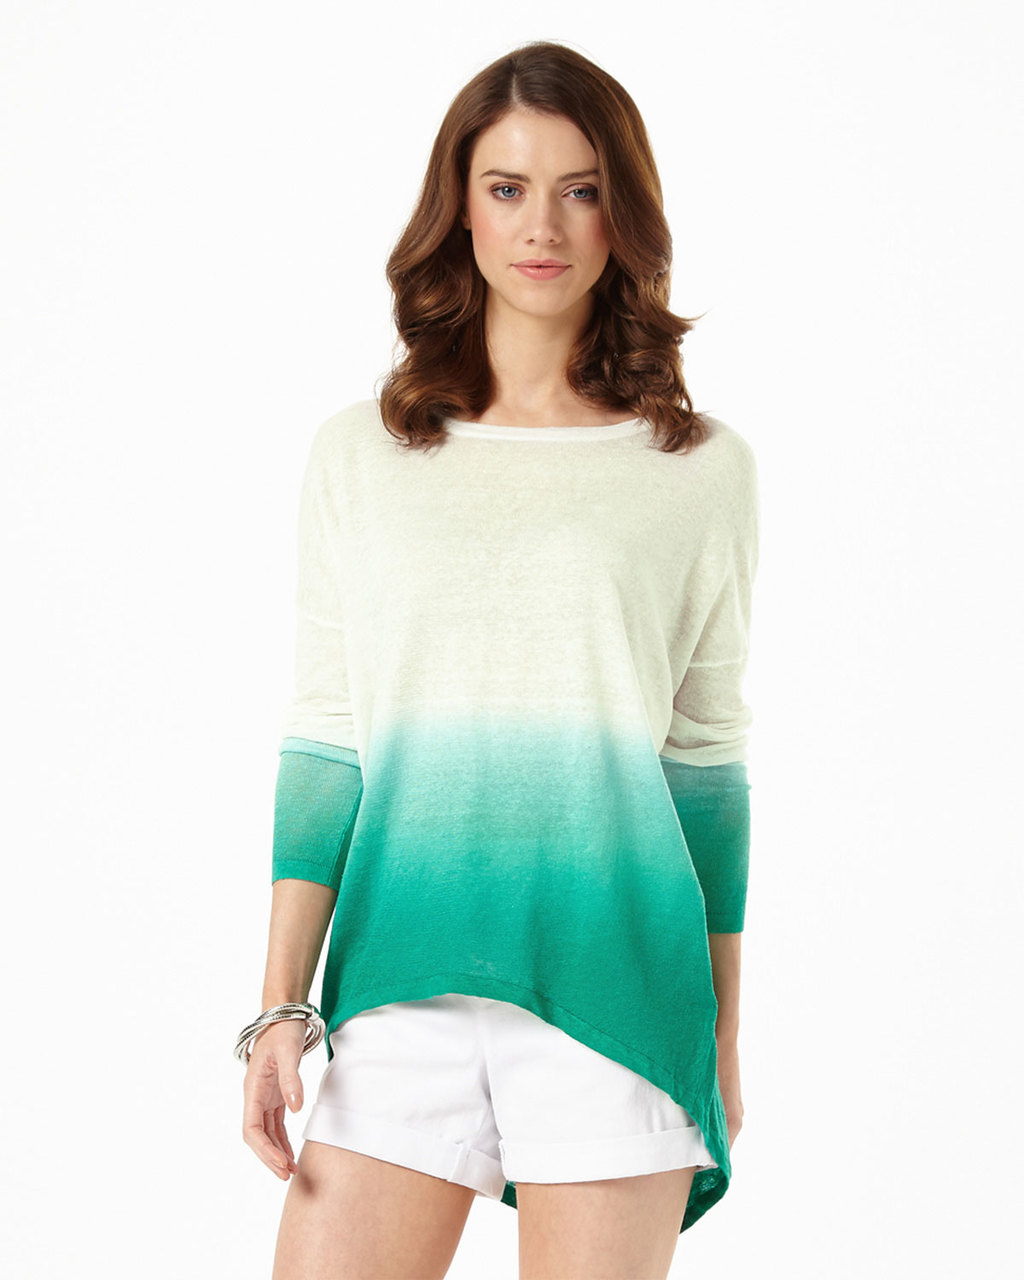 Dip Dye Elen Ellipse Jumper - length: below the bottom; style: standard; predominant colour: ivory/cream; secondary colour: mint green; occasions: casual; fibres: linen - 100%; fit: loose; neckline: crew; sleeve length: long sleeve; sleeve style: standard; texture group: knits/crochet; pattern type: fabric; pattern: colourblock; multicoloured: multicoloured; season: s/s 2016; wardrobe: highlight